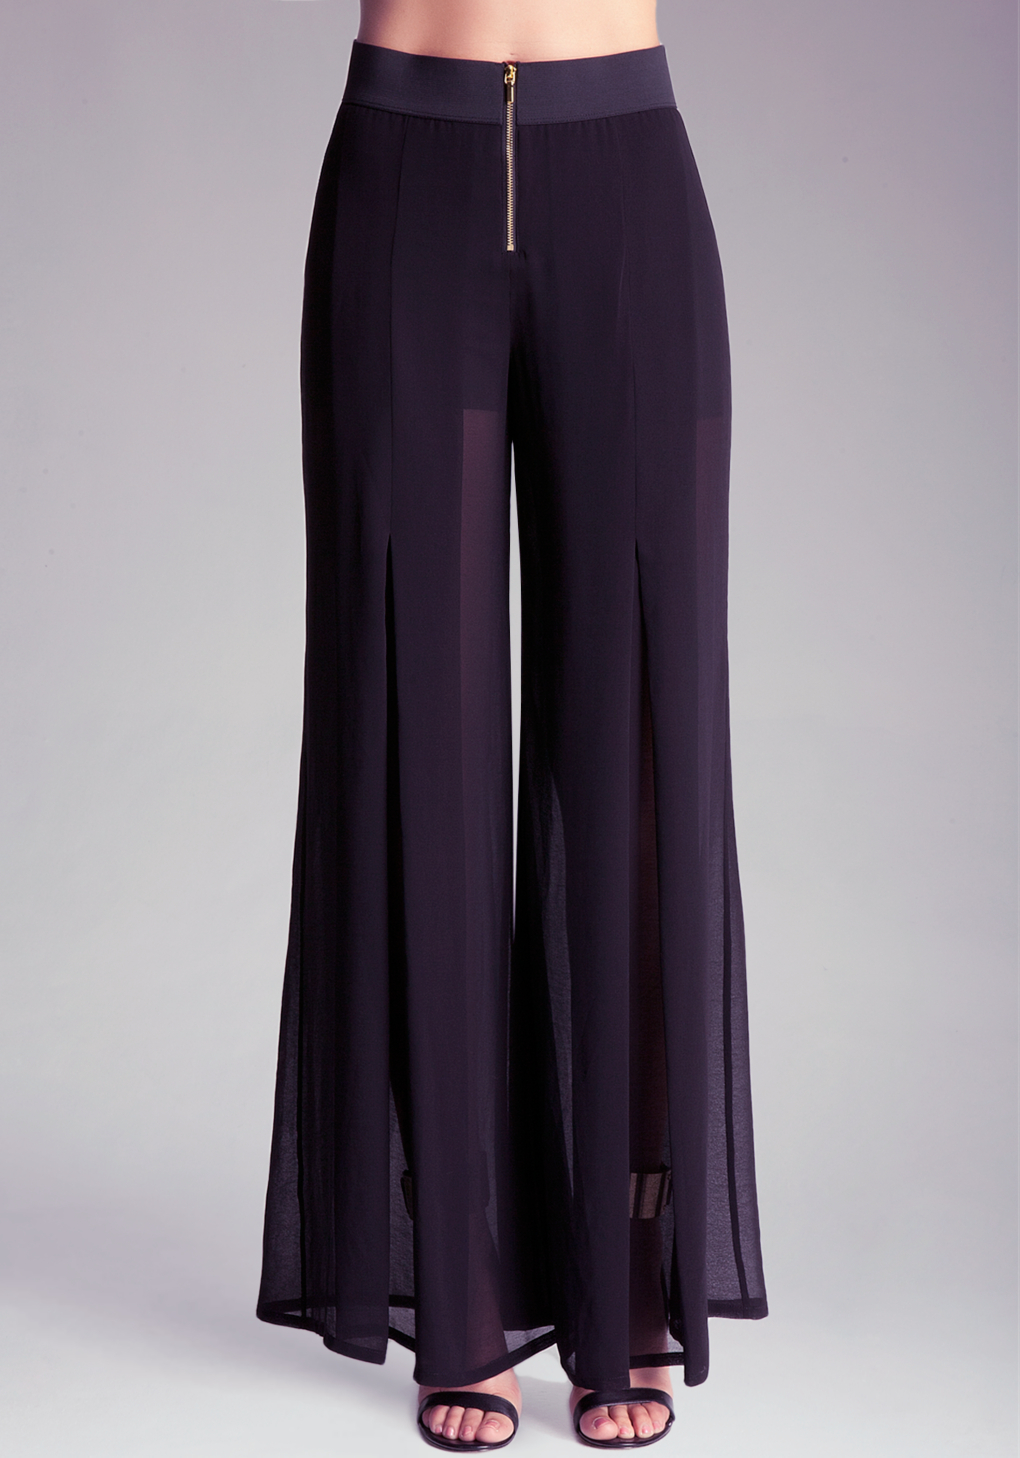 Bebe Sheer Wide Leg Pant in Black | Lyst